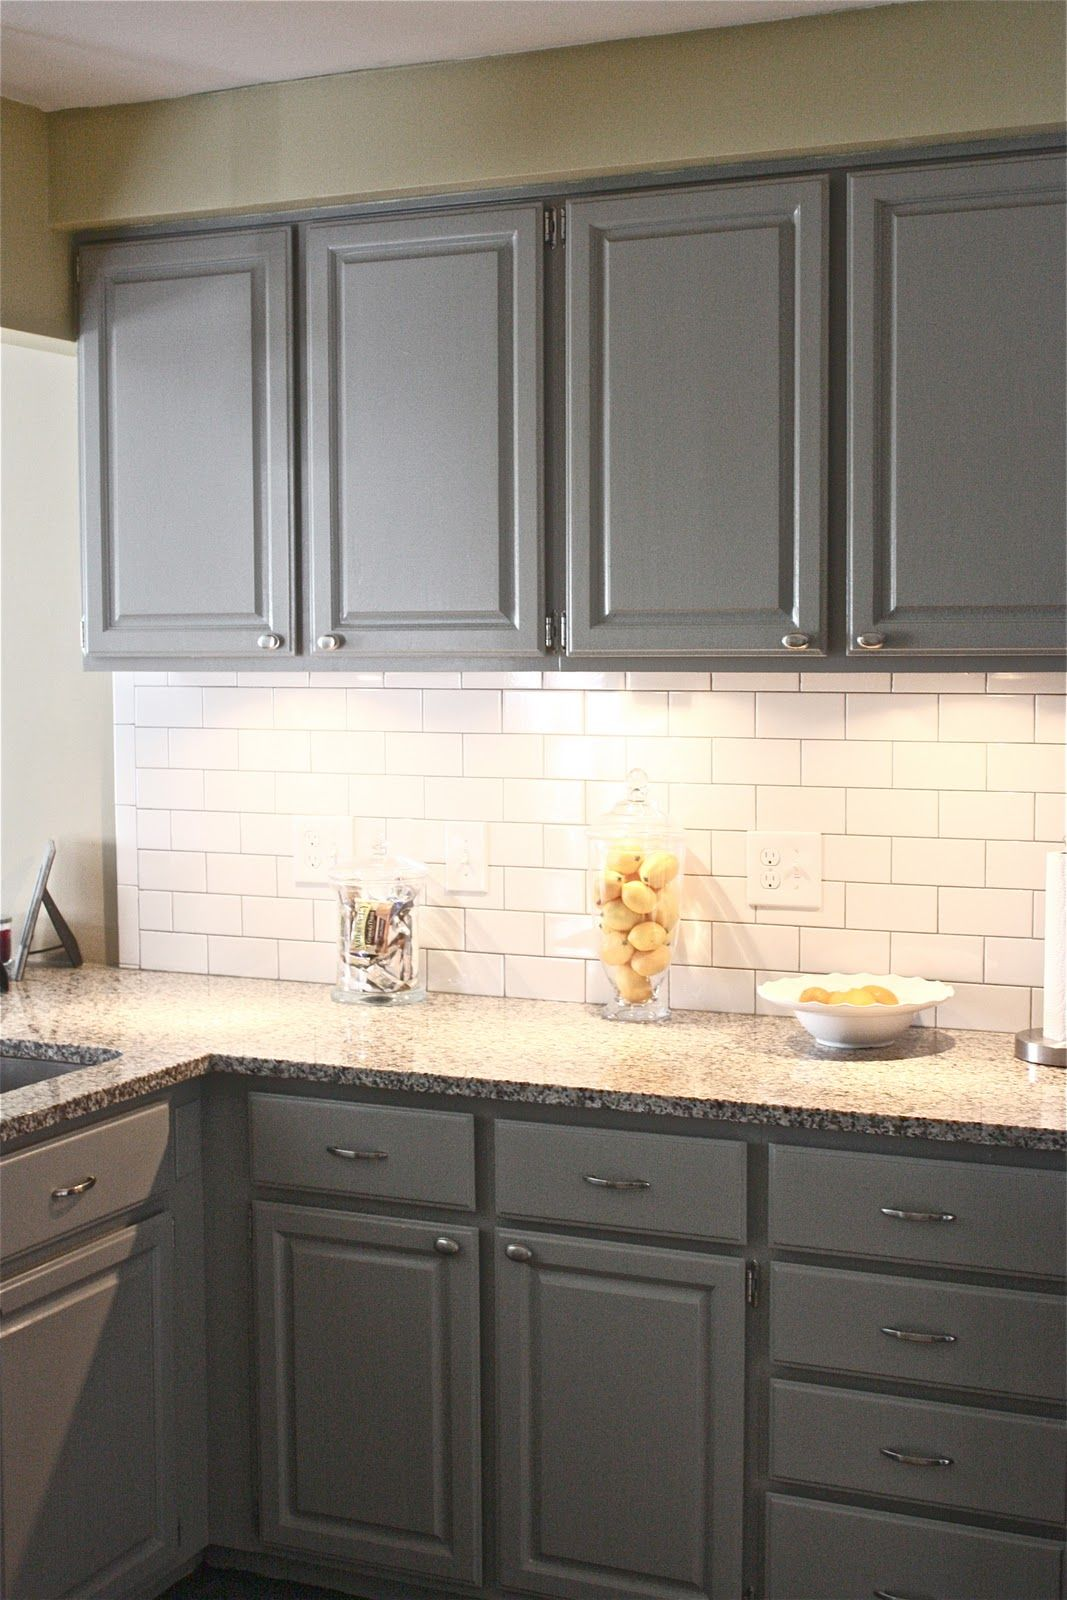 Painted Gray Kitchen Cabinets Single Handle Faucet With Sprayer White Corian Countertops Tile Floor